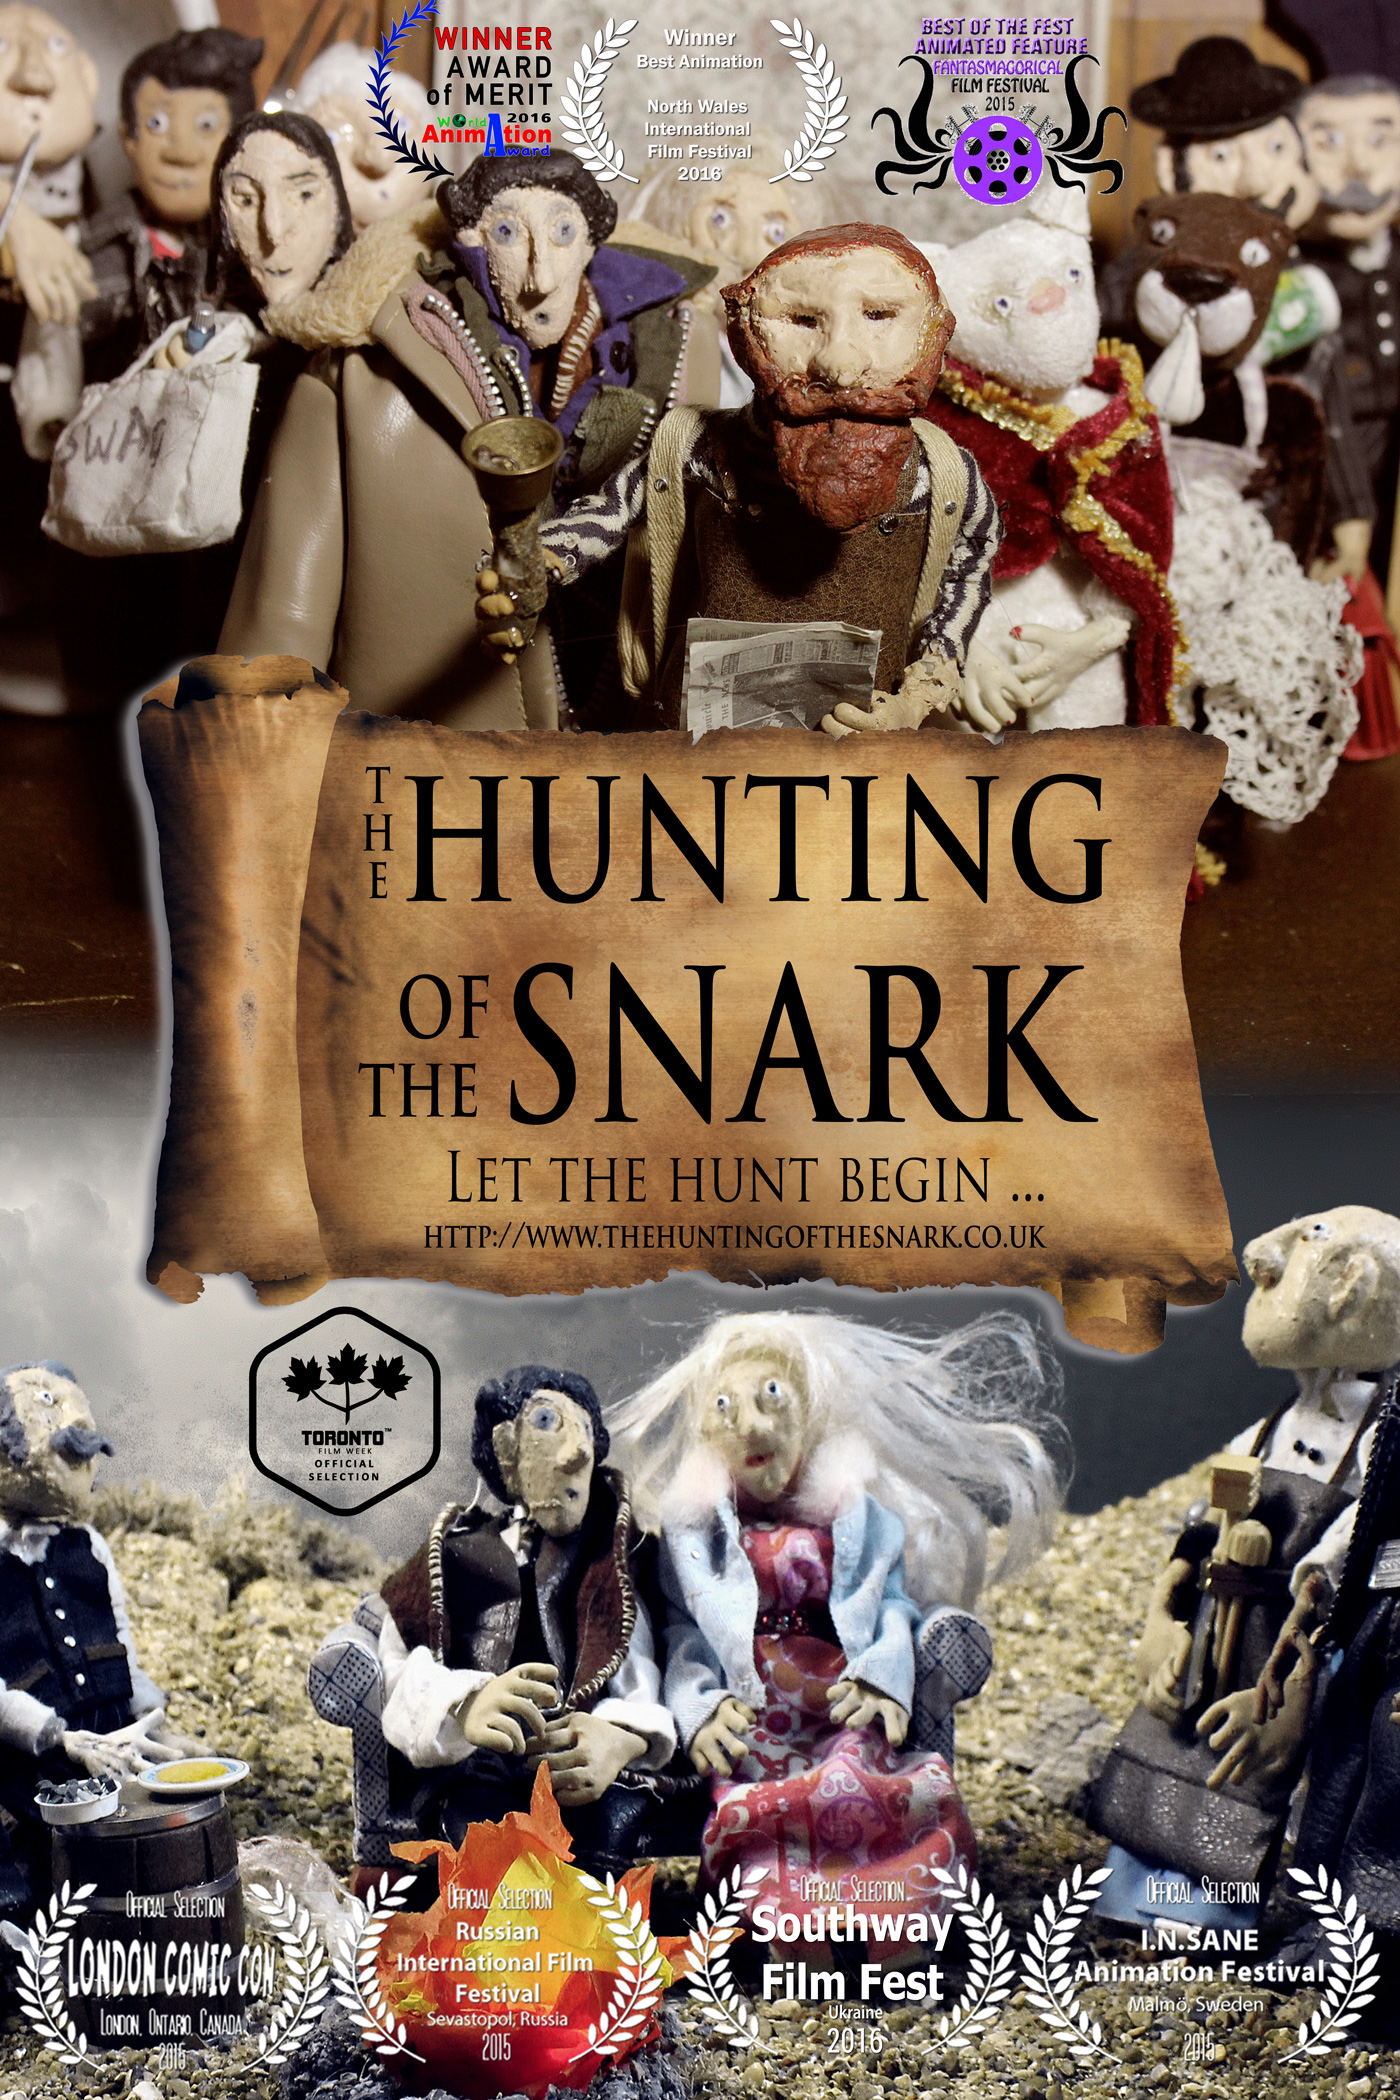 Lewis Carroll's Hunting of the Snark, by Sarane Bensusan,British animation